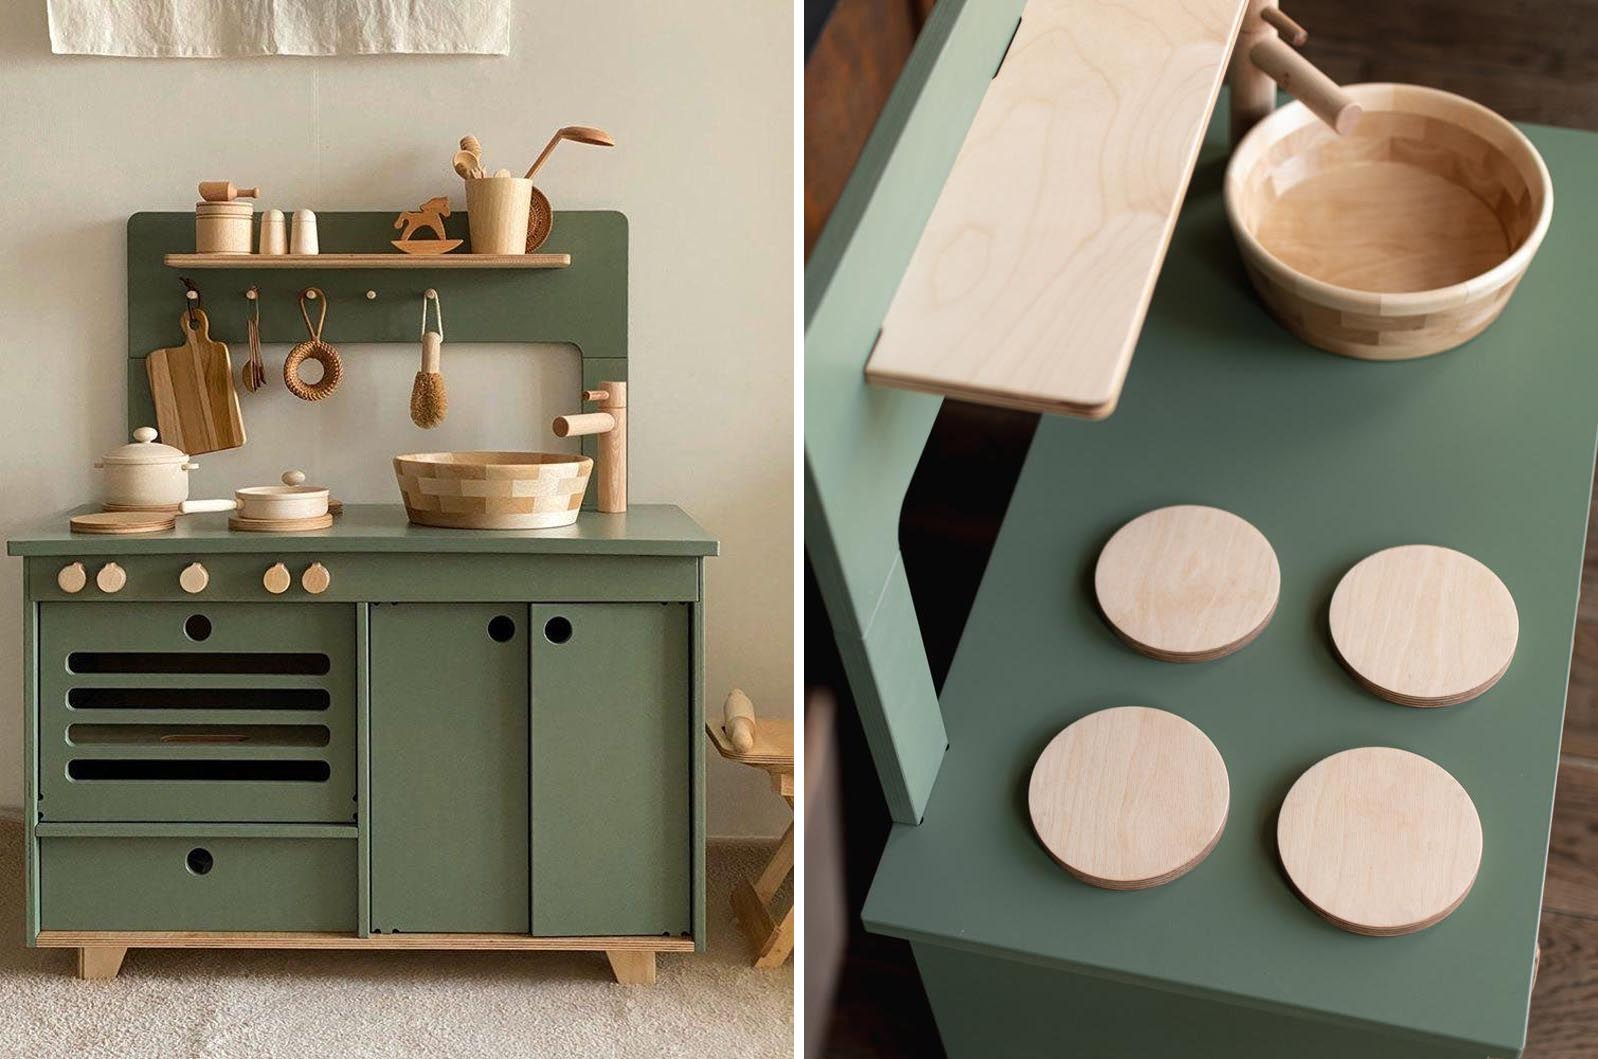 Gift Idea - Wood Play Kitchen